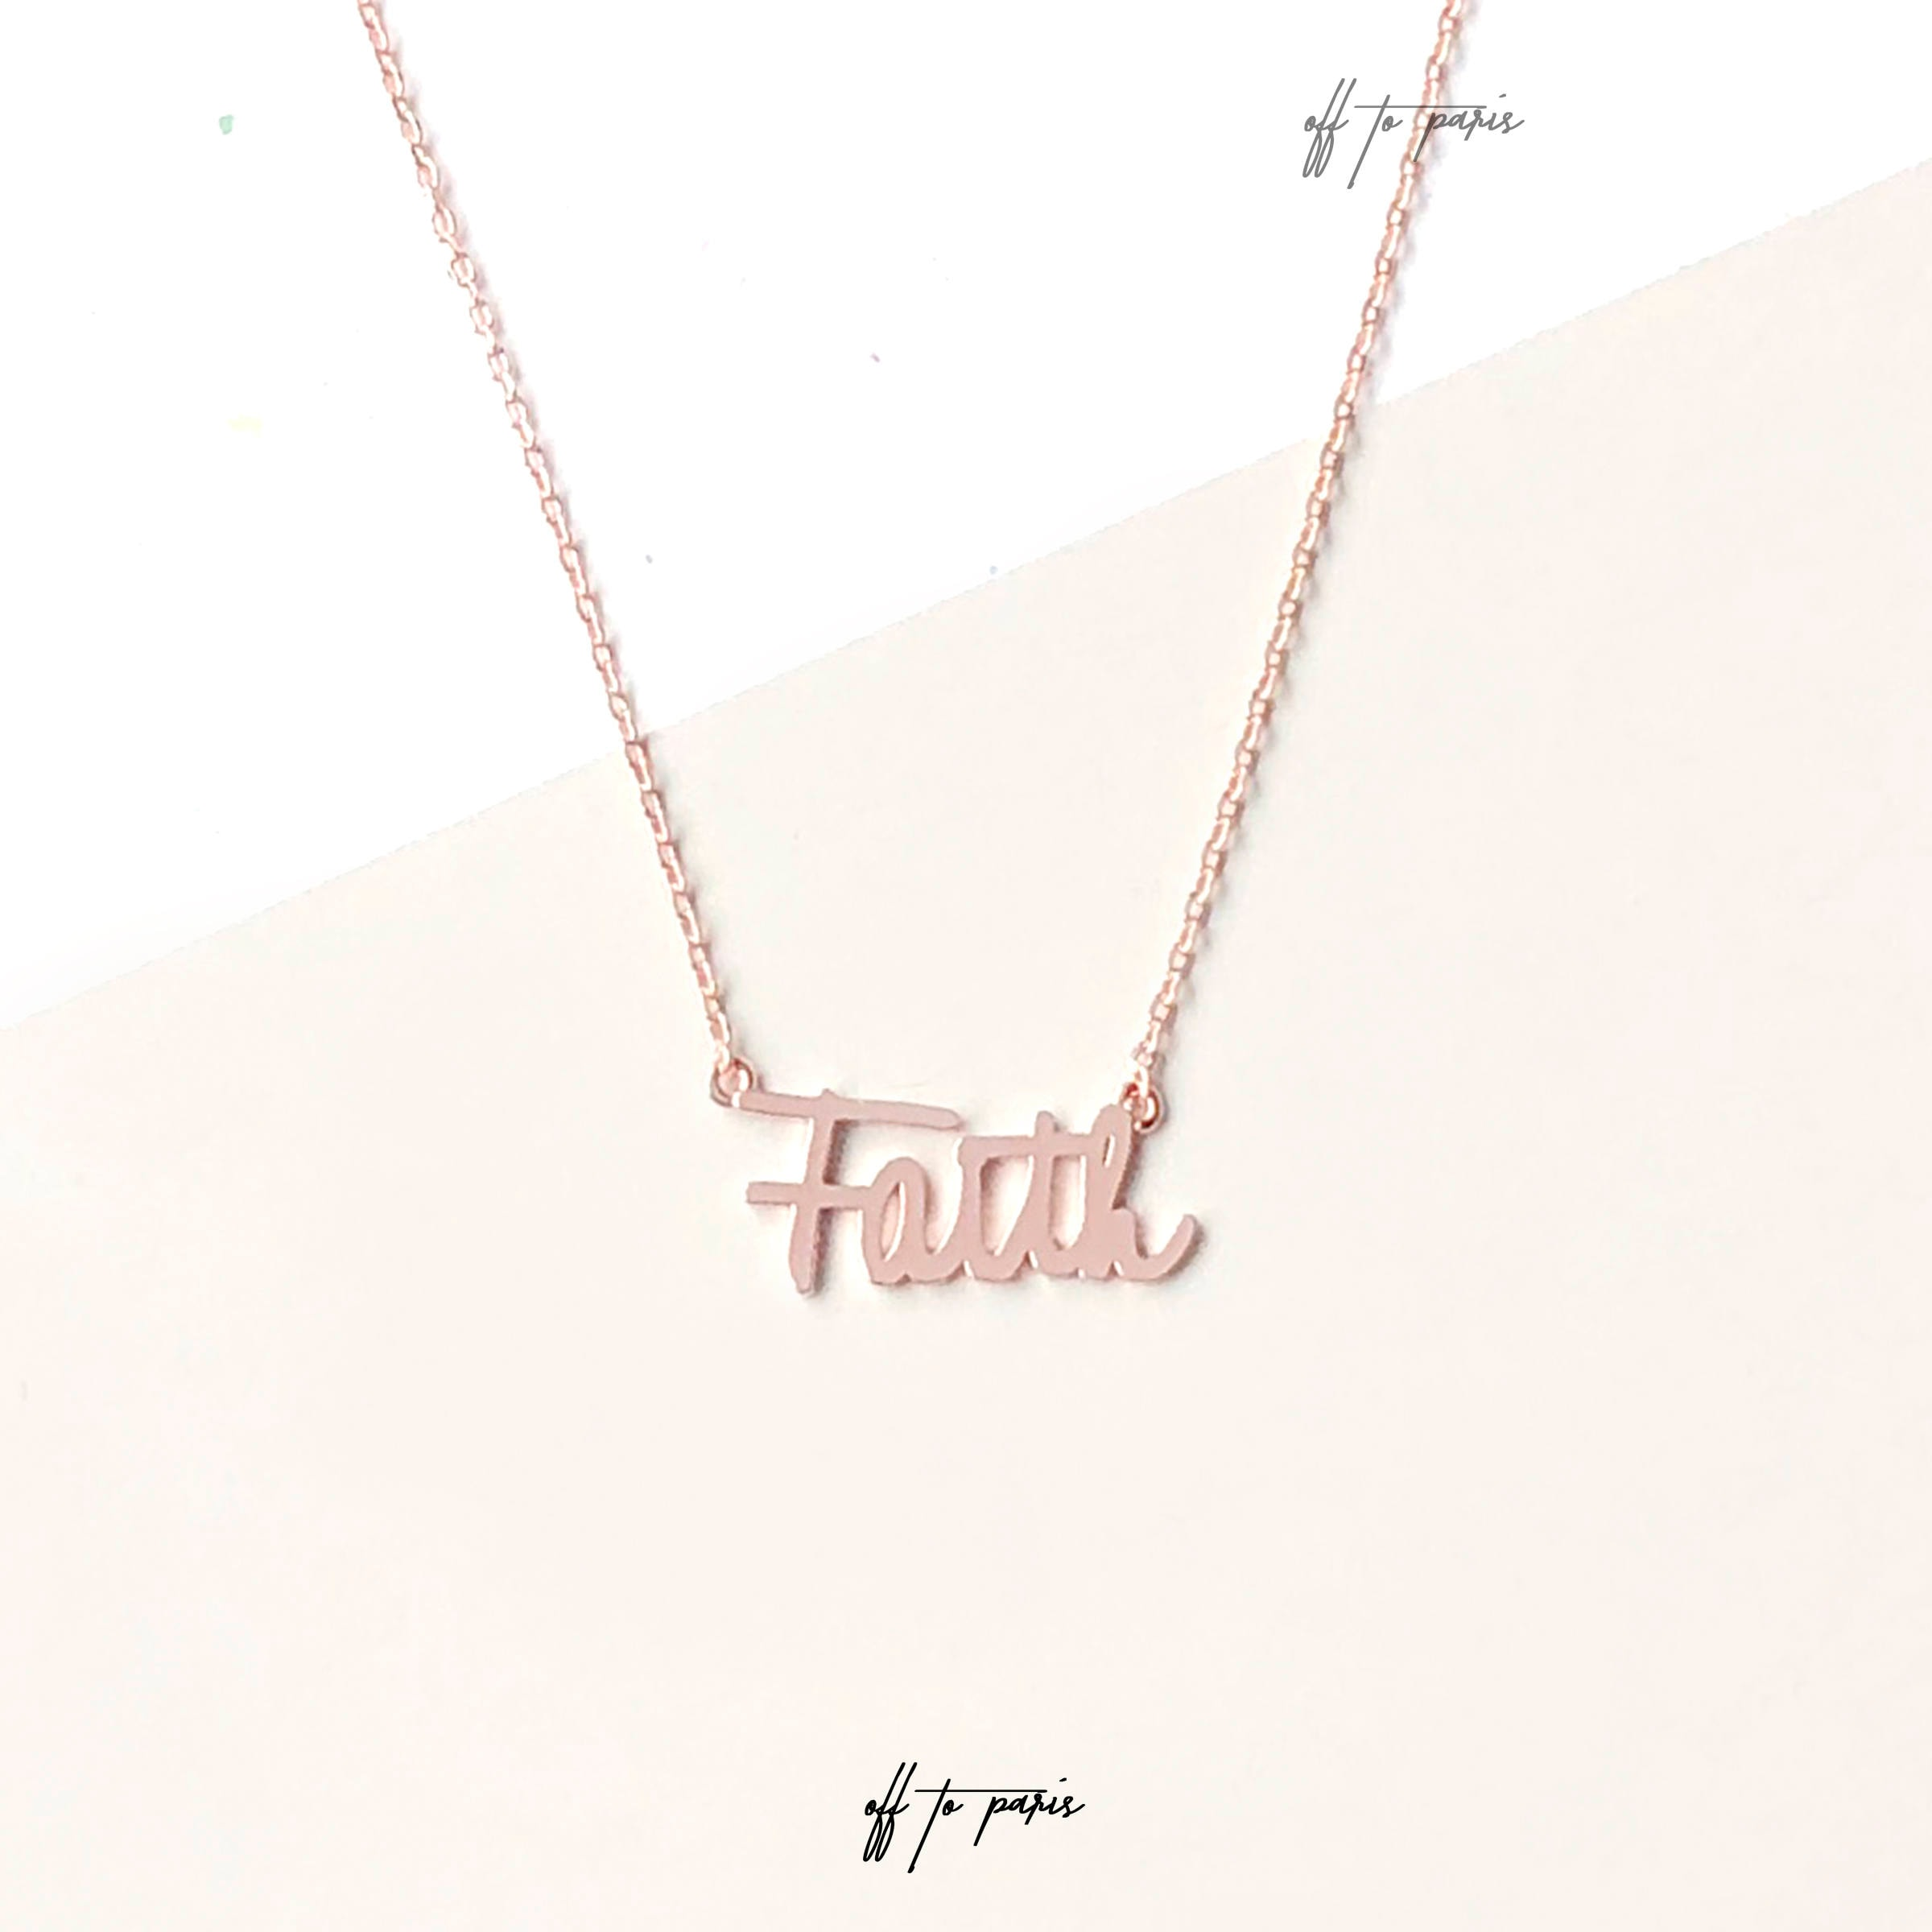 jewelry pendant shelf ts brass faith engraved scalloped top necklace